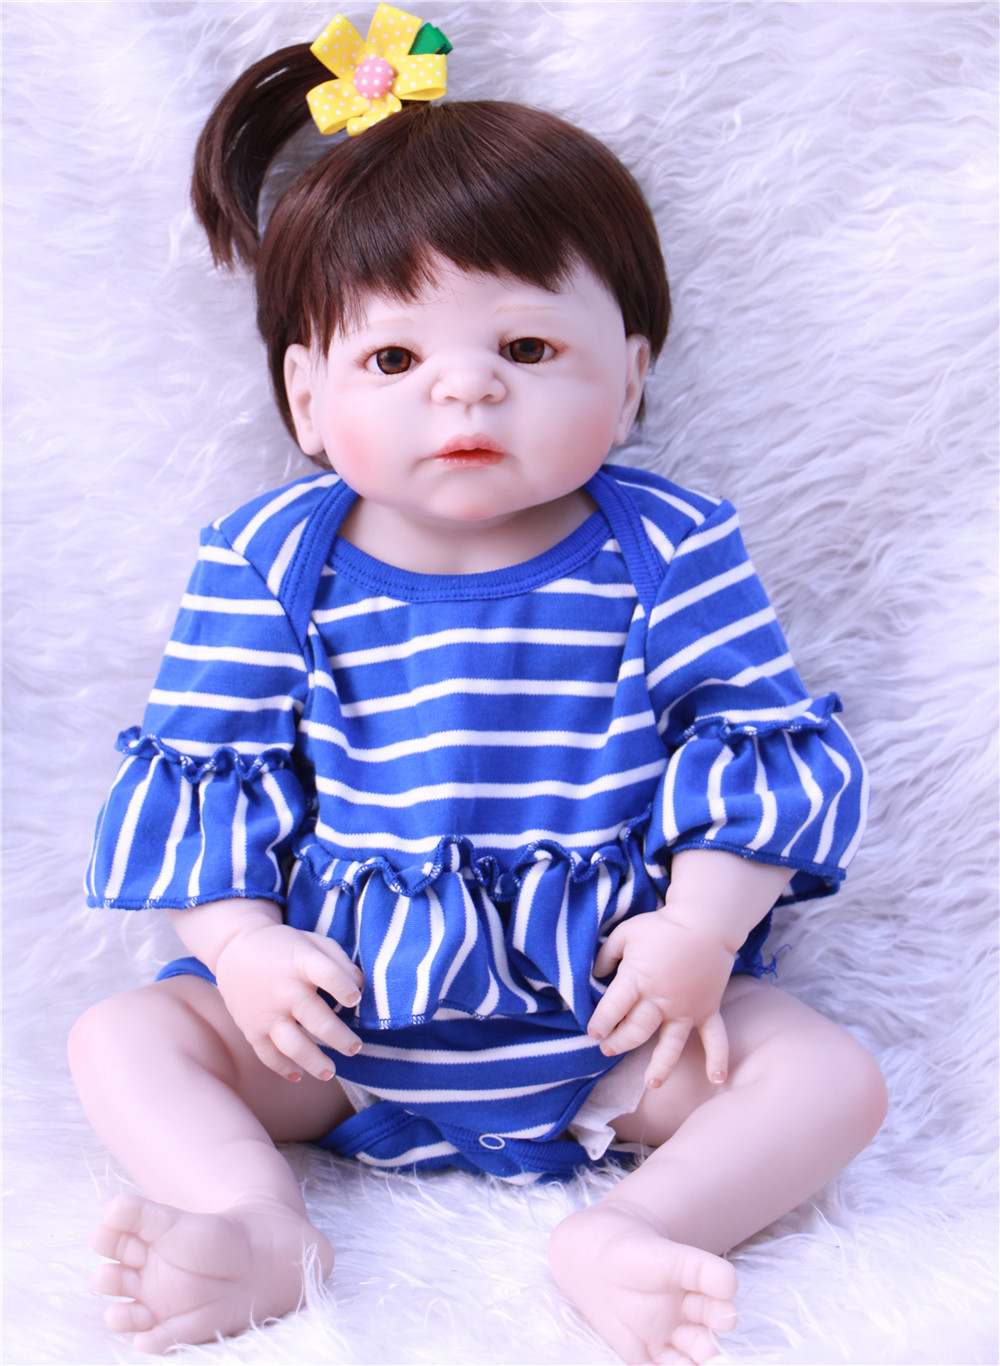 55cm girl bebe reborn Dolls full menina de silicone menina Baby Doll Reborn 22 Inch Vinyl baby born Boneca Doll new style girl dolls full silicone reborn dolls with beautiful dress adora dolls bebe reborn de silicone menica